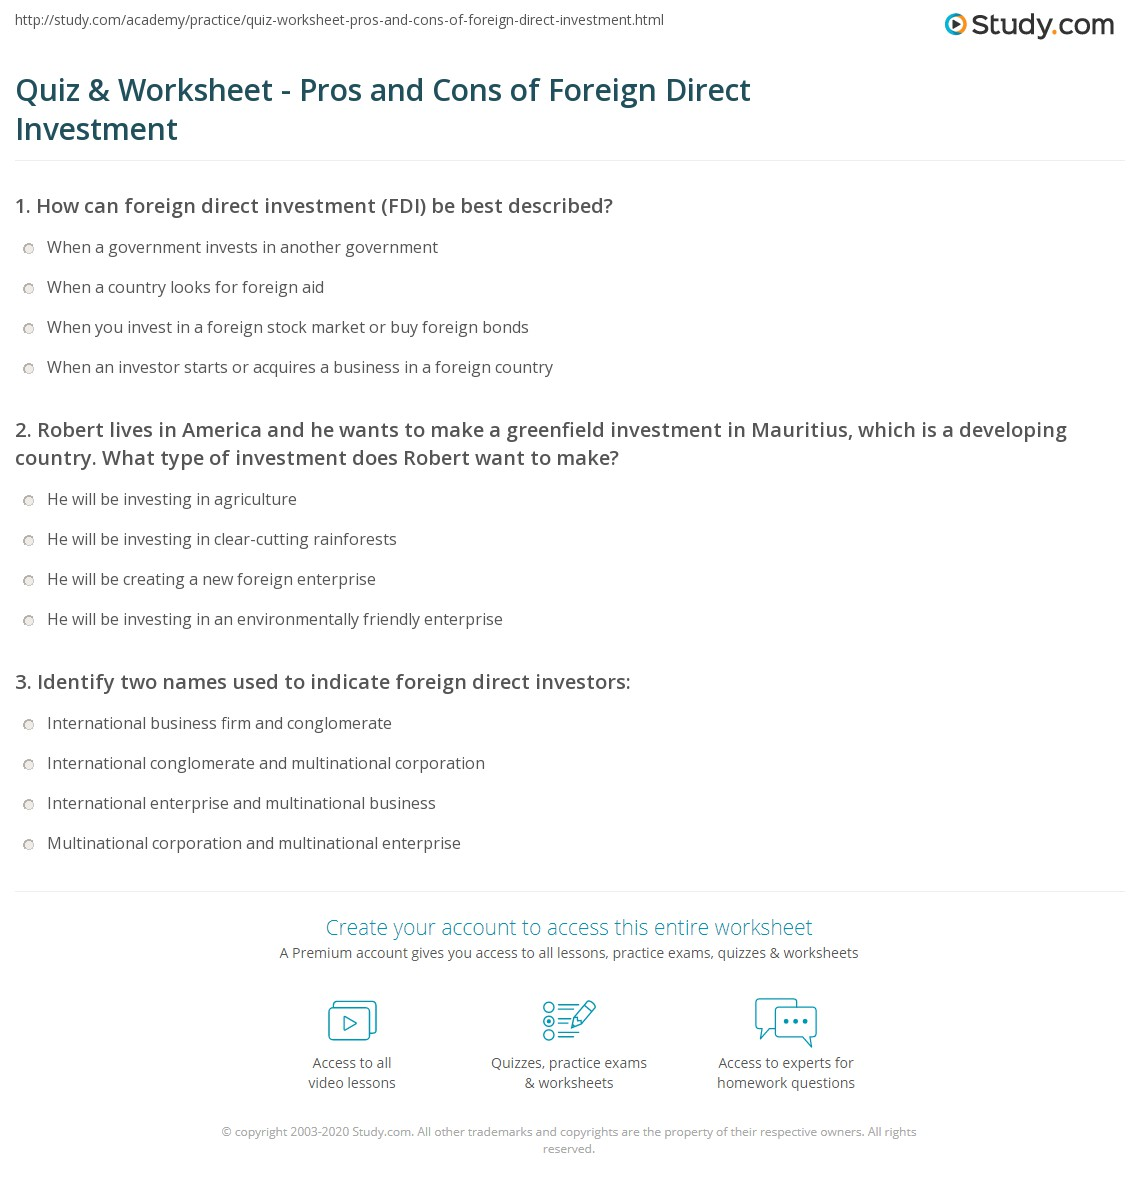 greenfield investment advantages and disadvantages